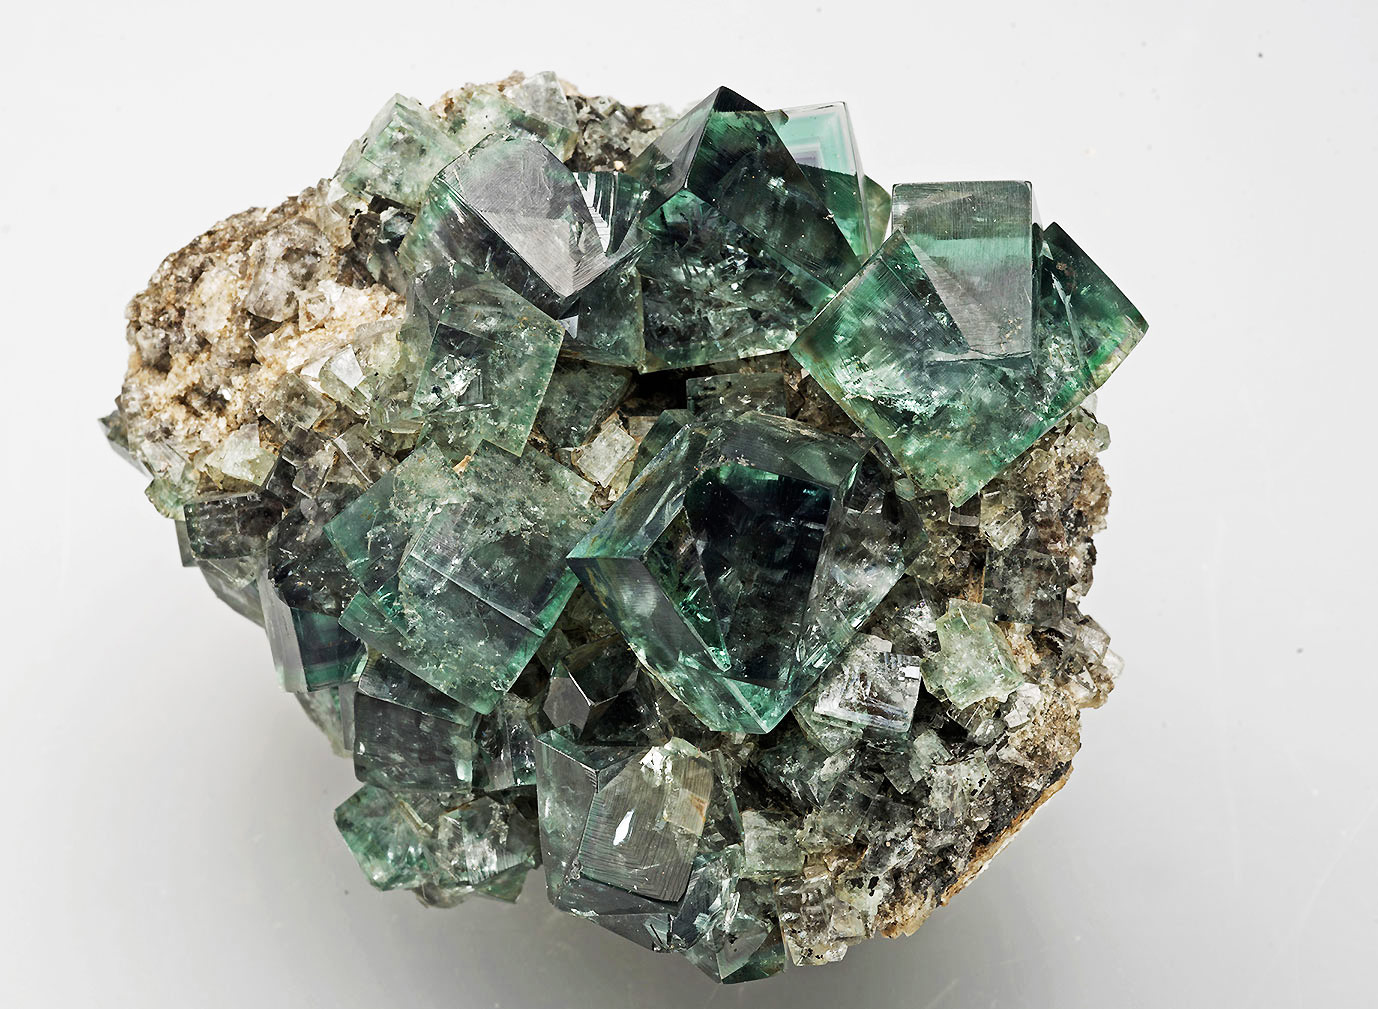 Fluorite, Eastgate Cement quarry, Weardale. 75x60x45mm